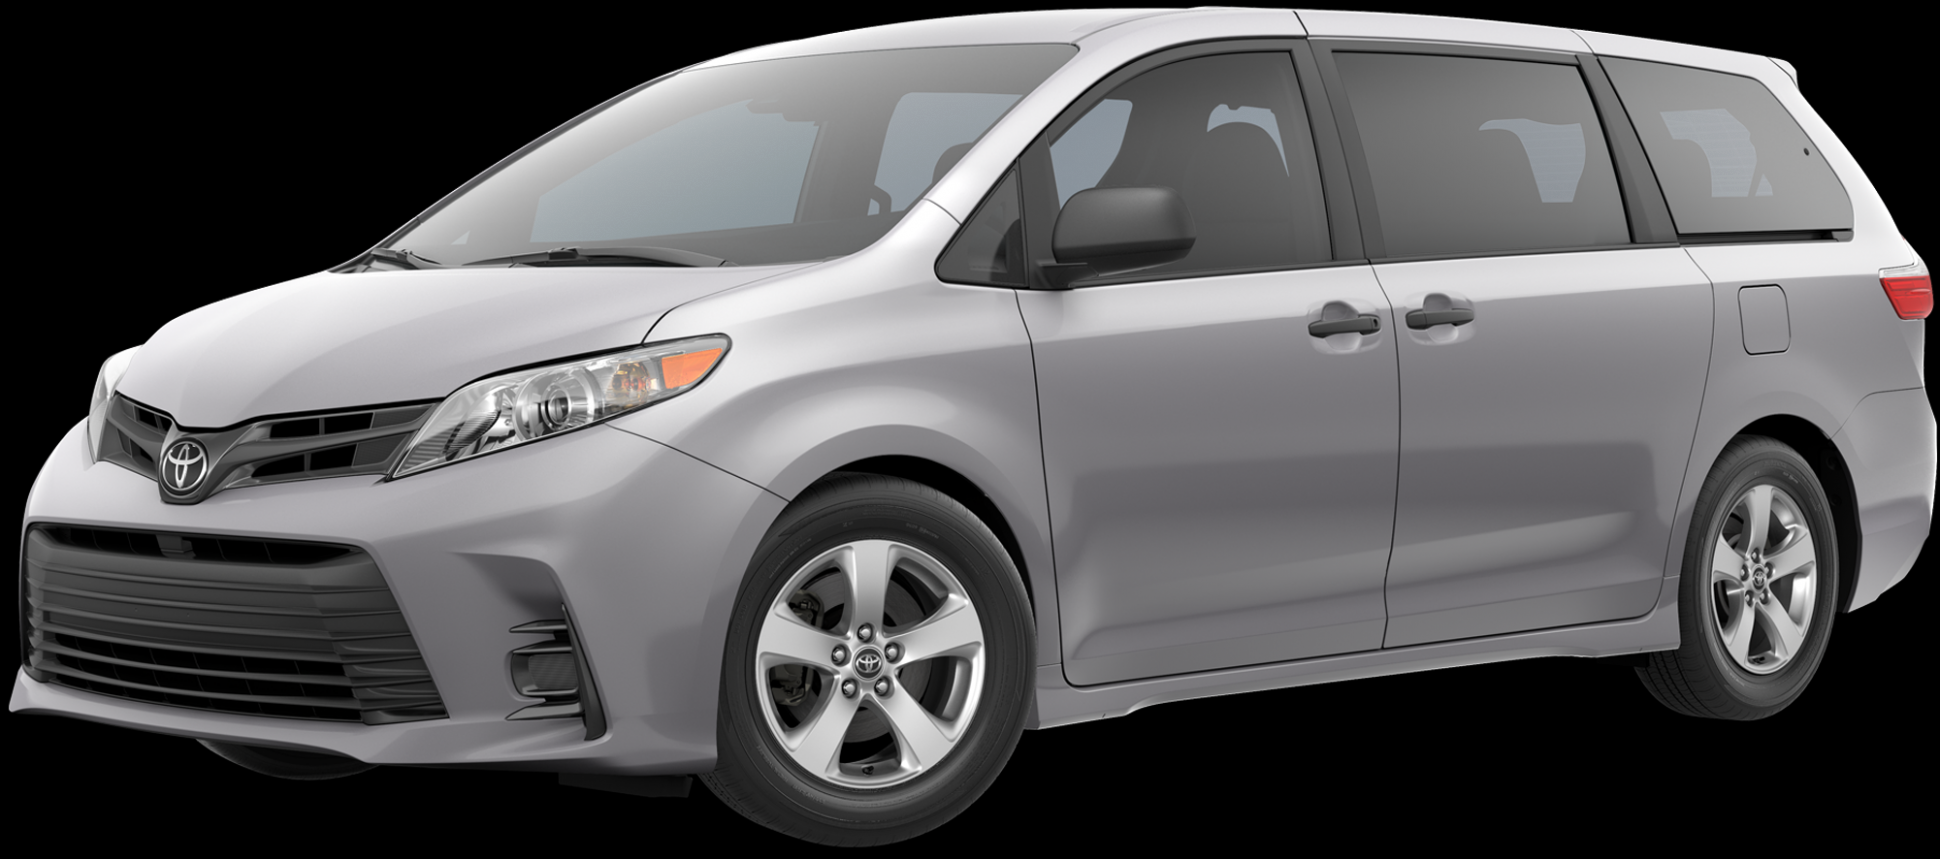 10 Toyota Sienna Incentives, Specials & Offers in Newburgh NY - toyota minivan 2020